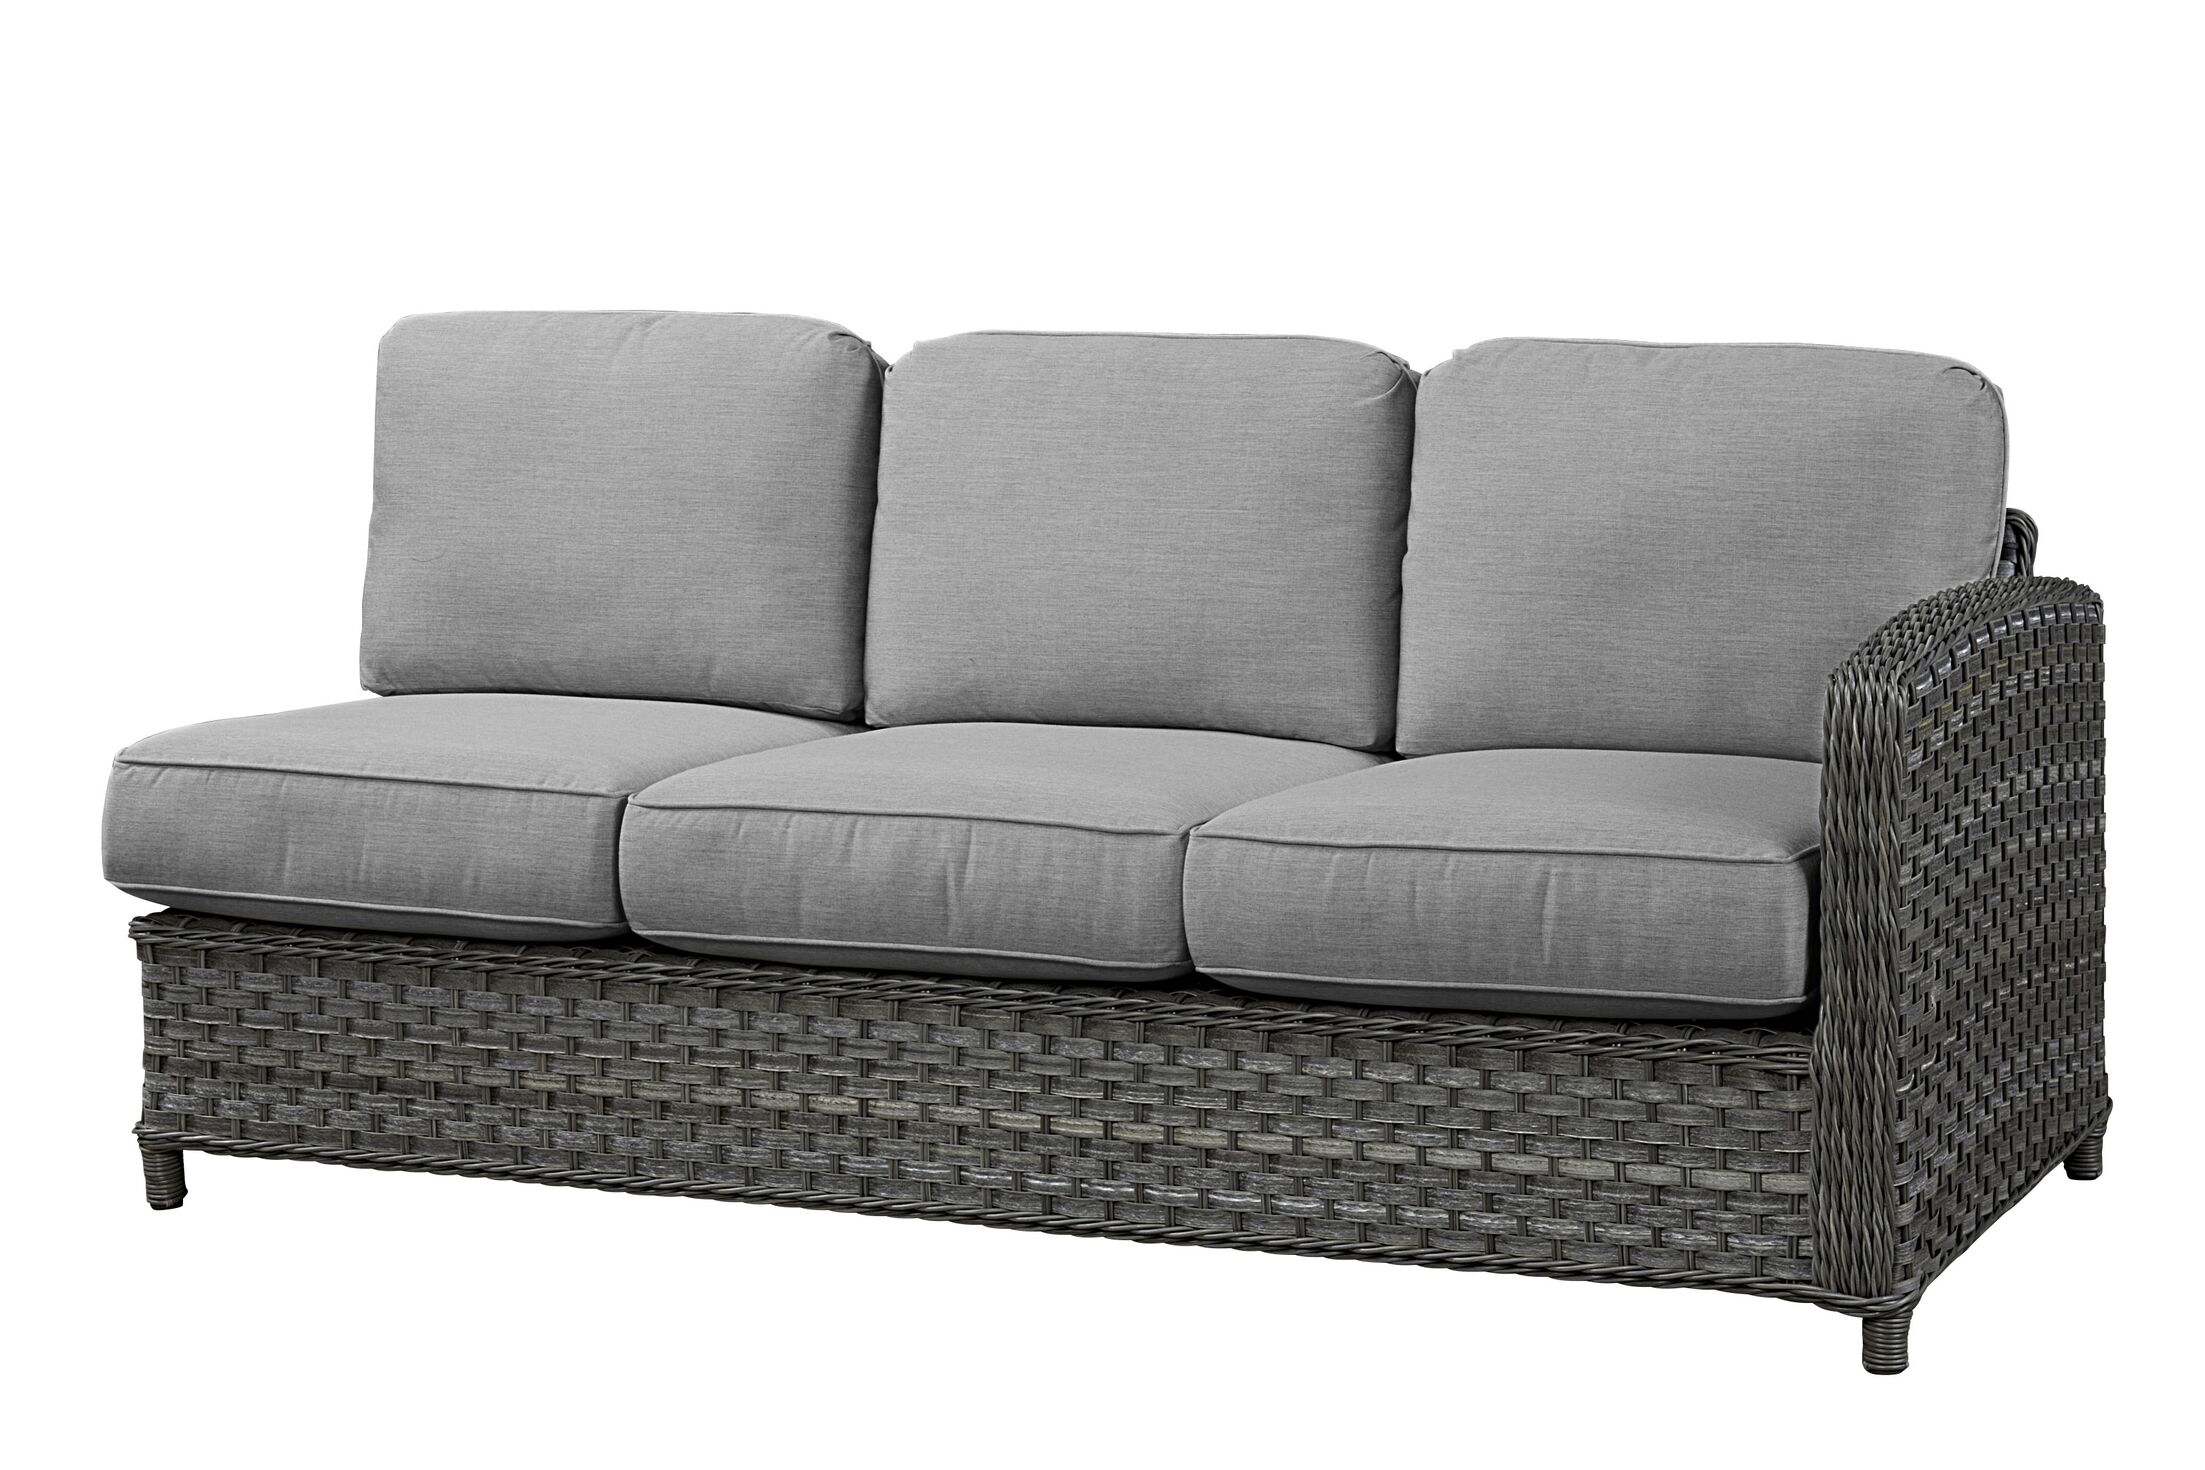 Sofa with Cushion Frame Finish: Grey, Fabric: Meridian Wren